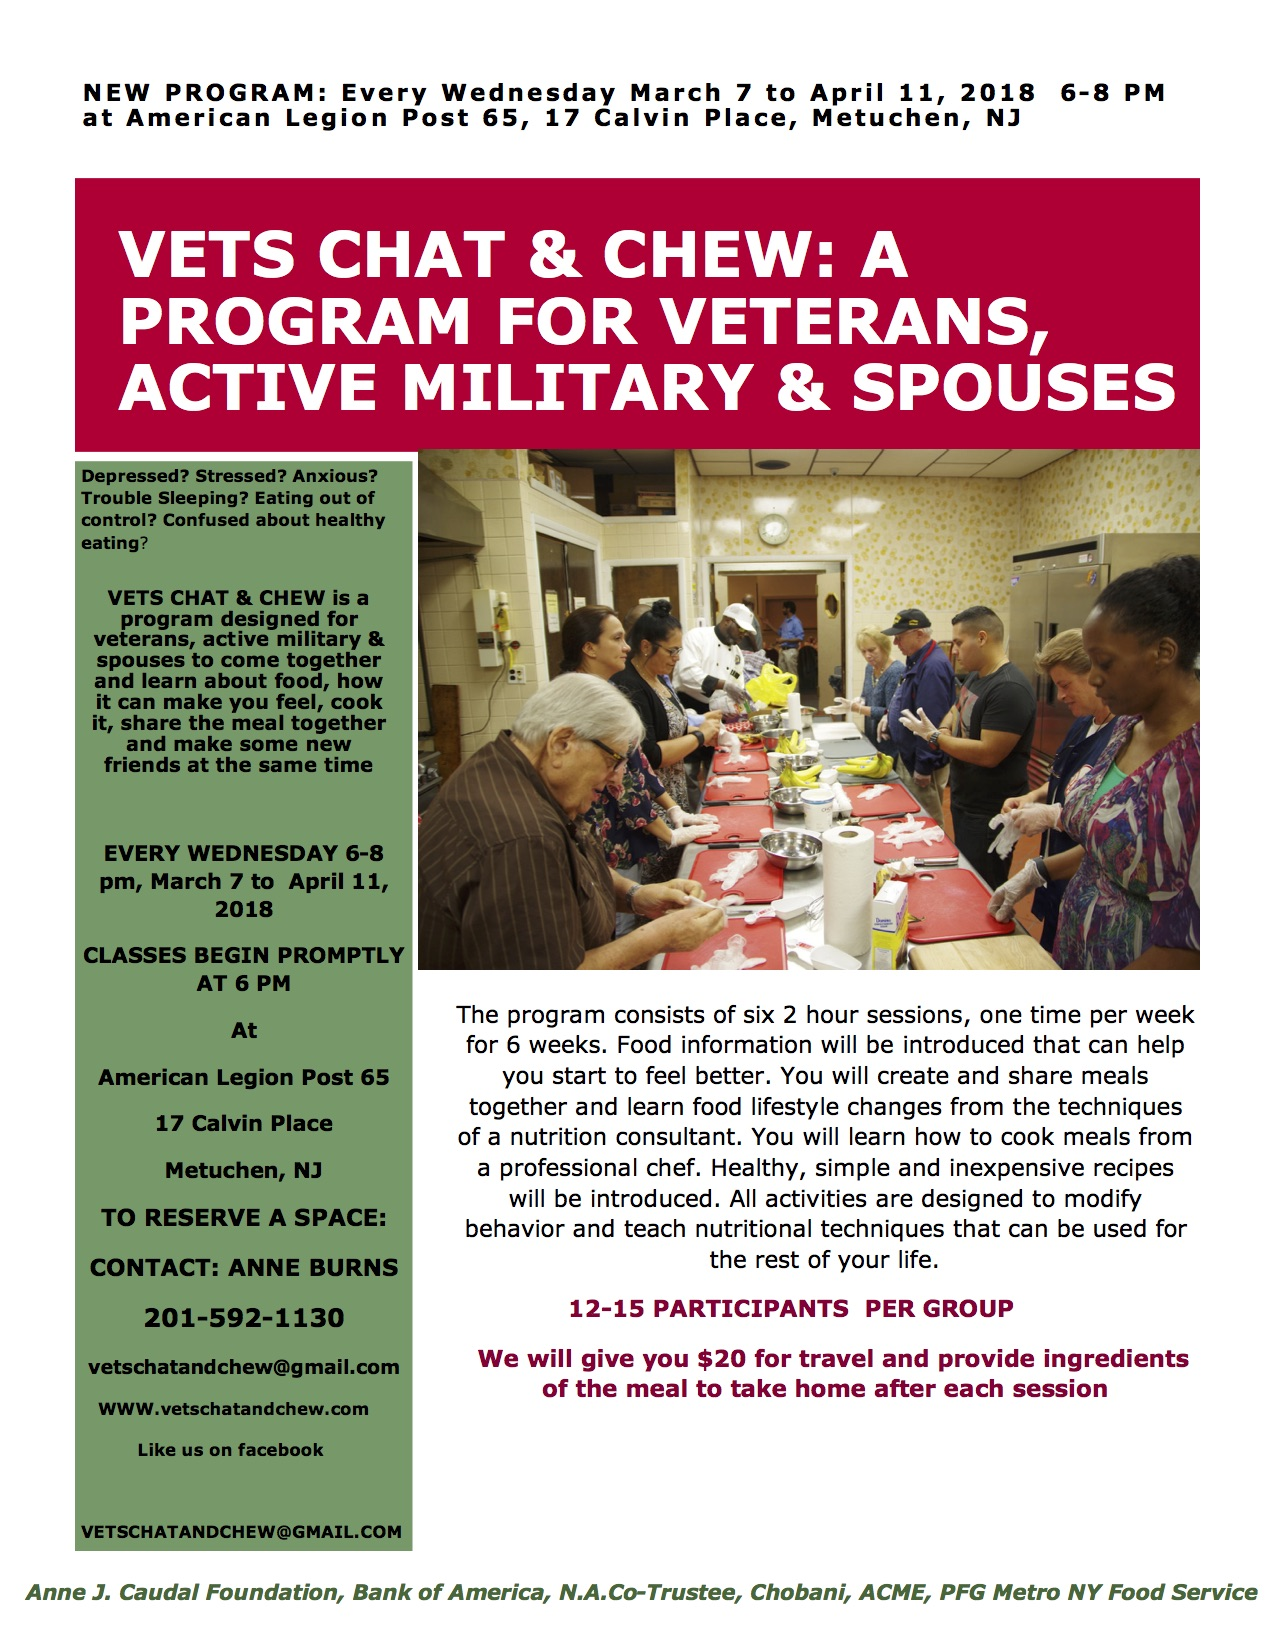 MIDDLESEX+CTY.+VETS++CHAT+&+CHEW+MARCH+7+TO+APRIL+11+2018.jpg